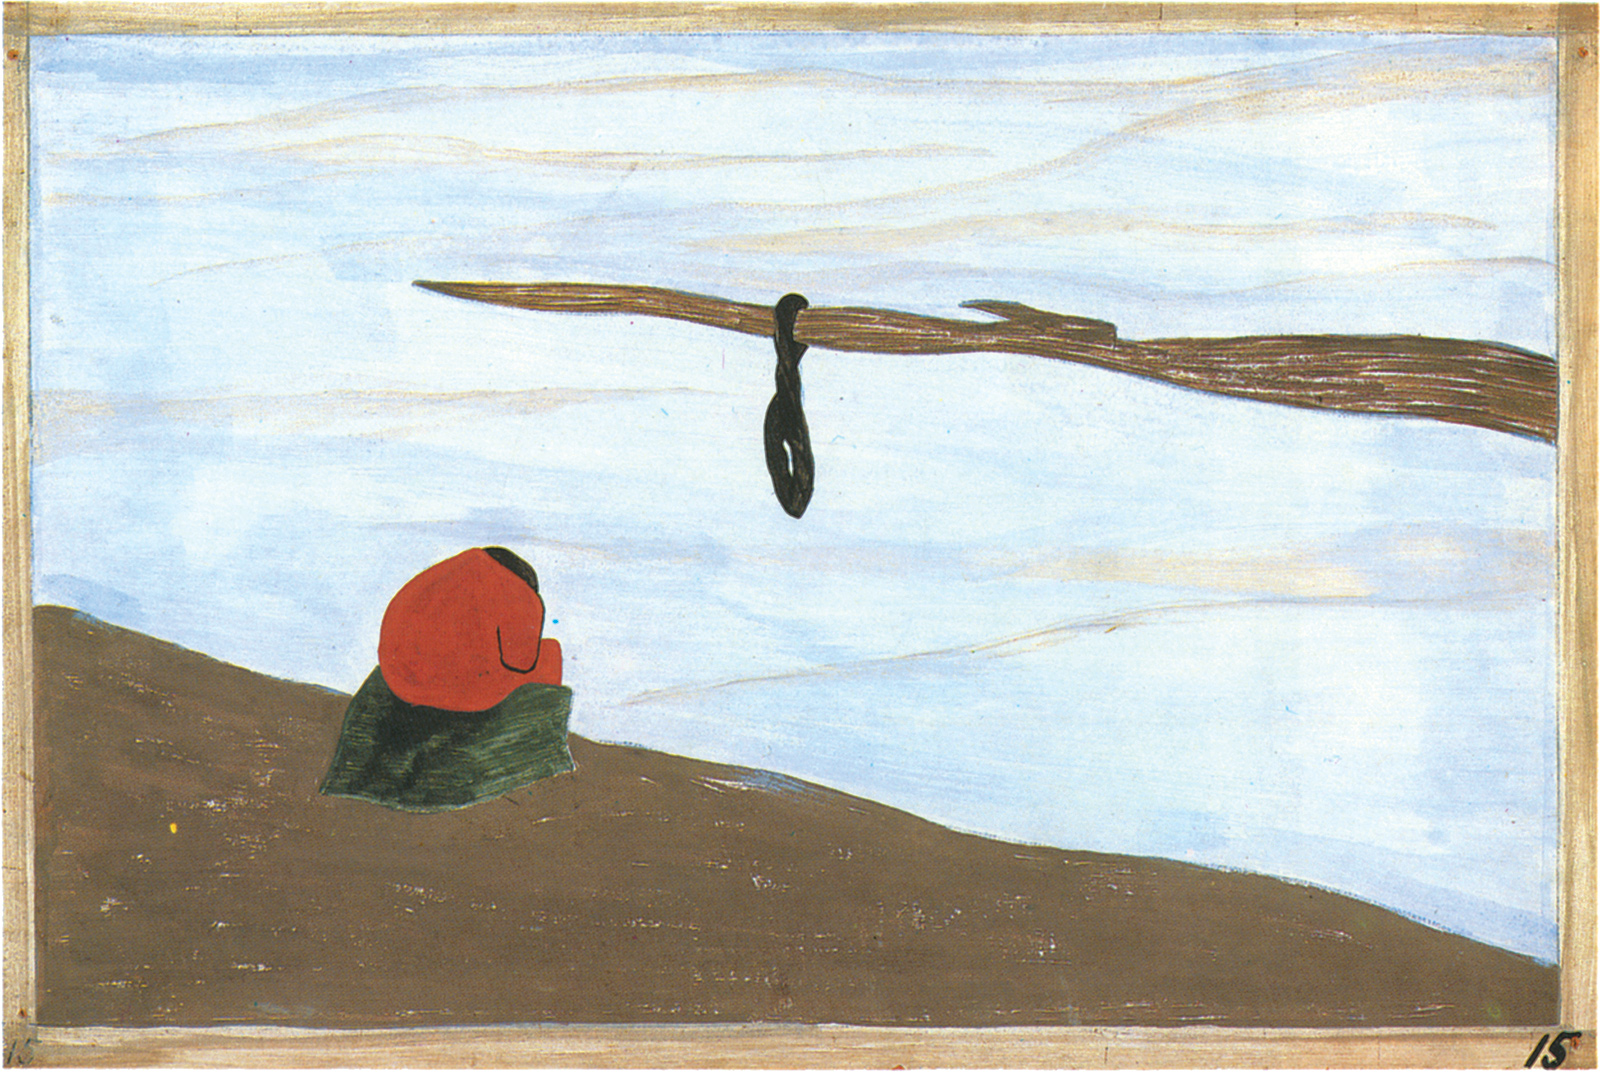 Jacob Lawrence: from the series The Migration of the Negro, 1940–1941